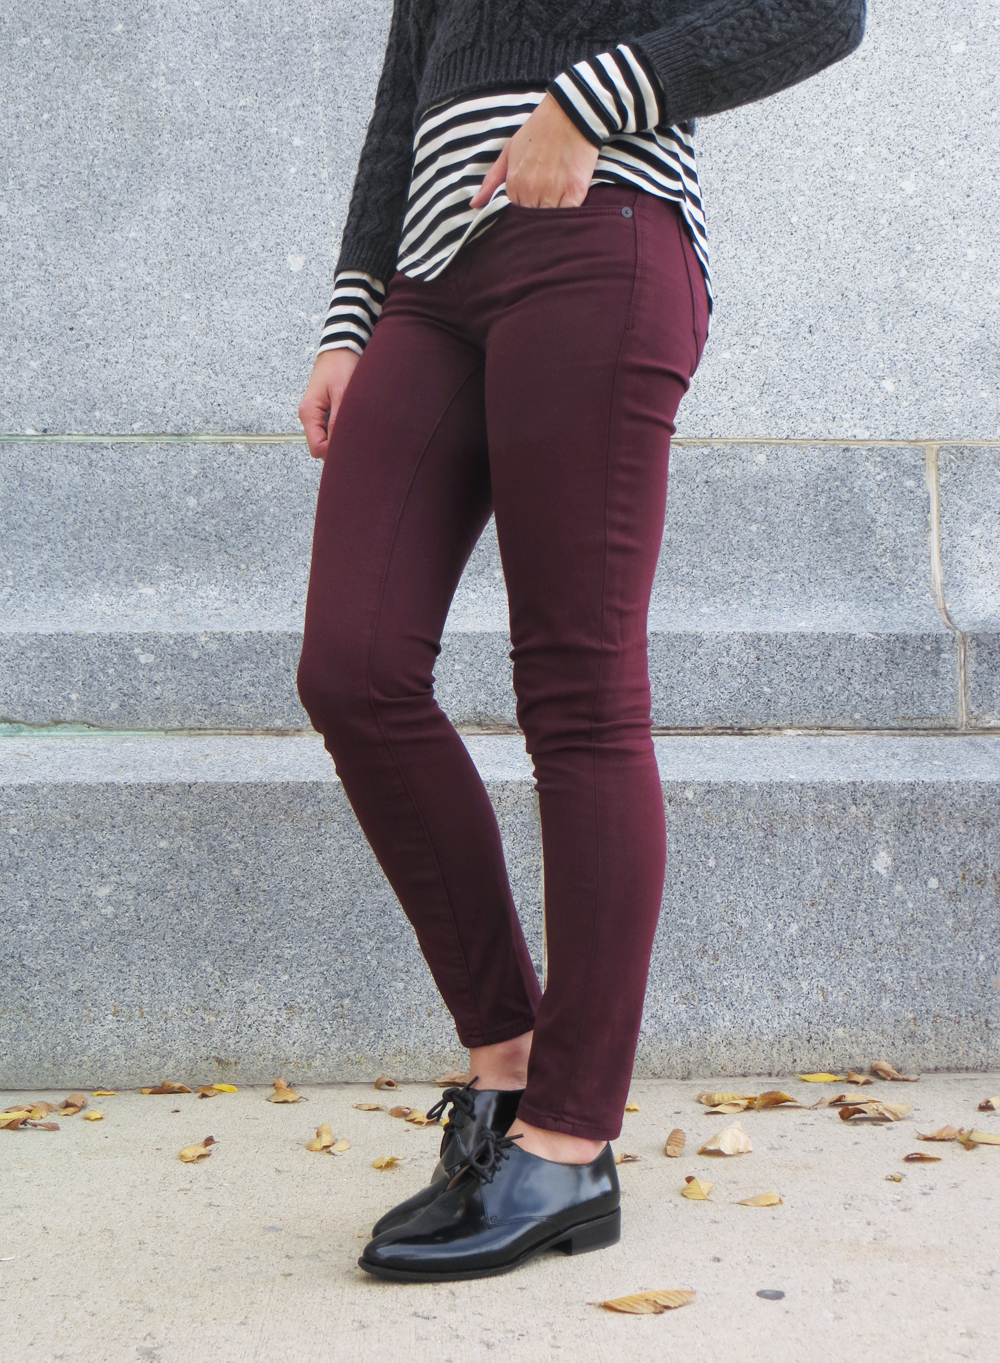 Burgundy pants + Madewell 'Jess' Oxfords in Cordovan -- Cotton Cashmere Cat Hair